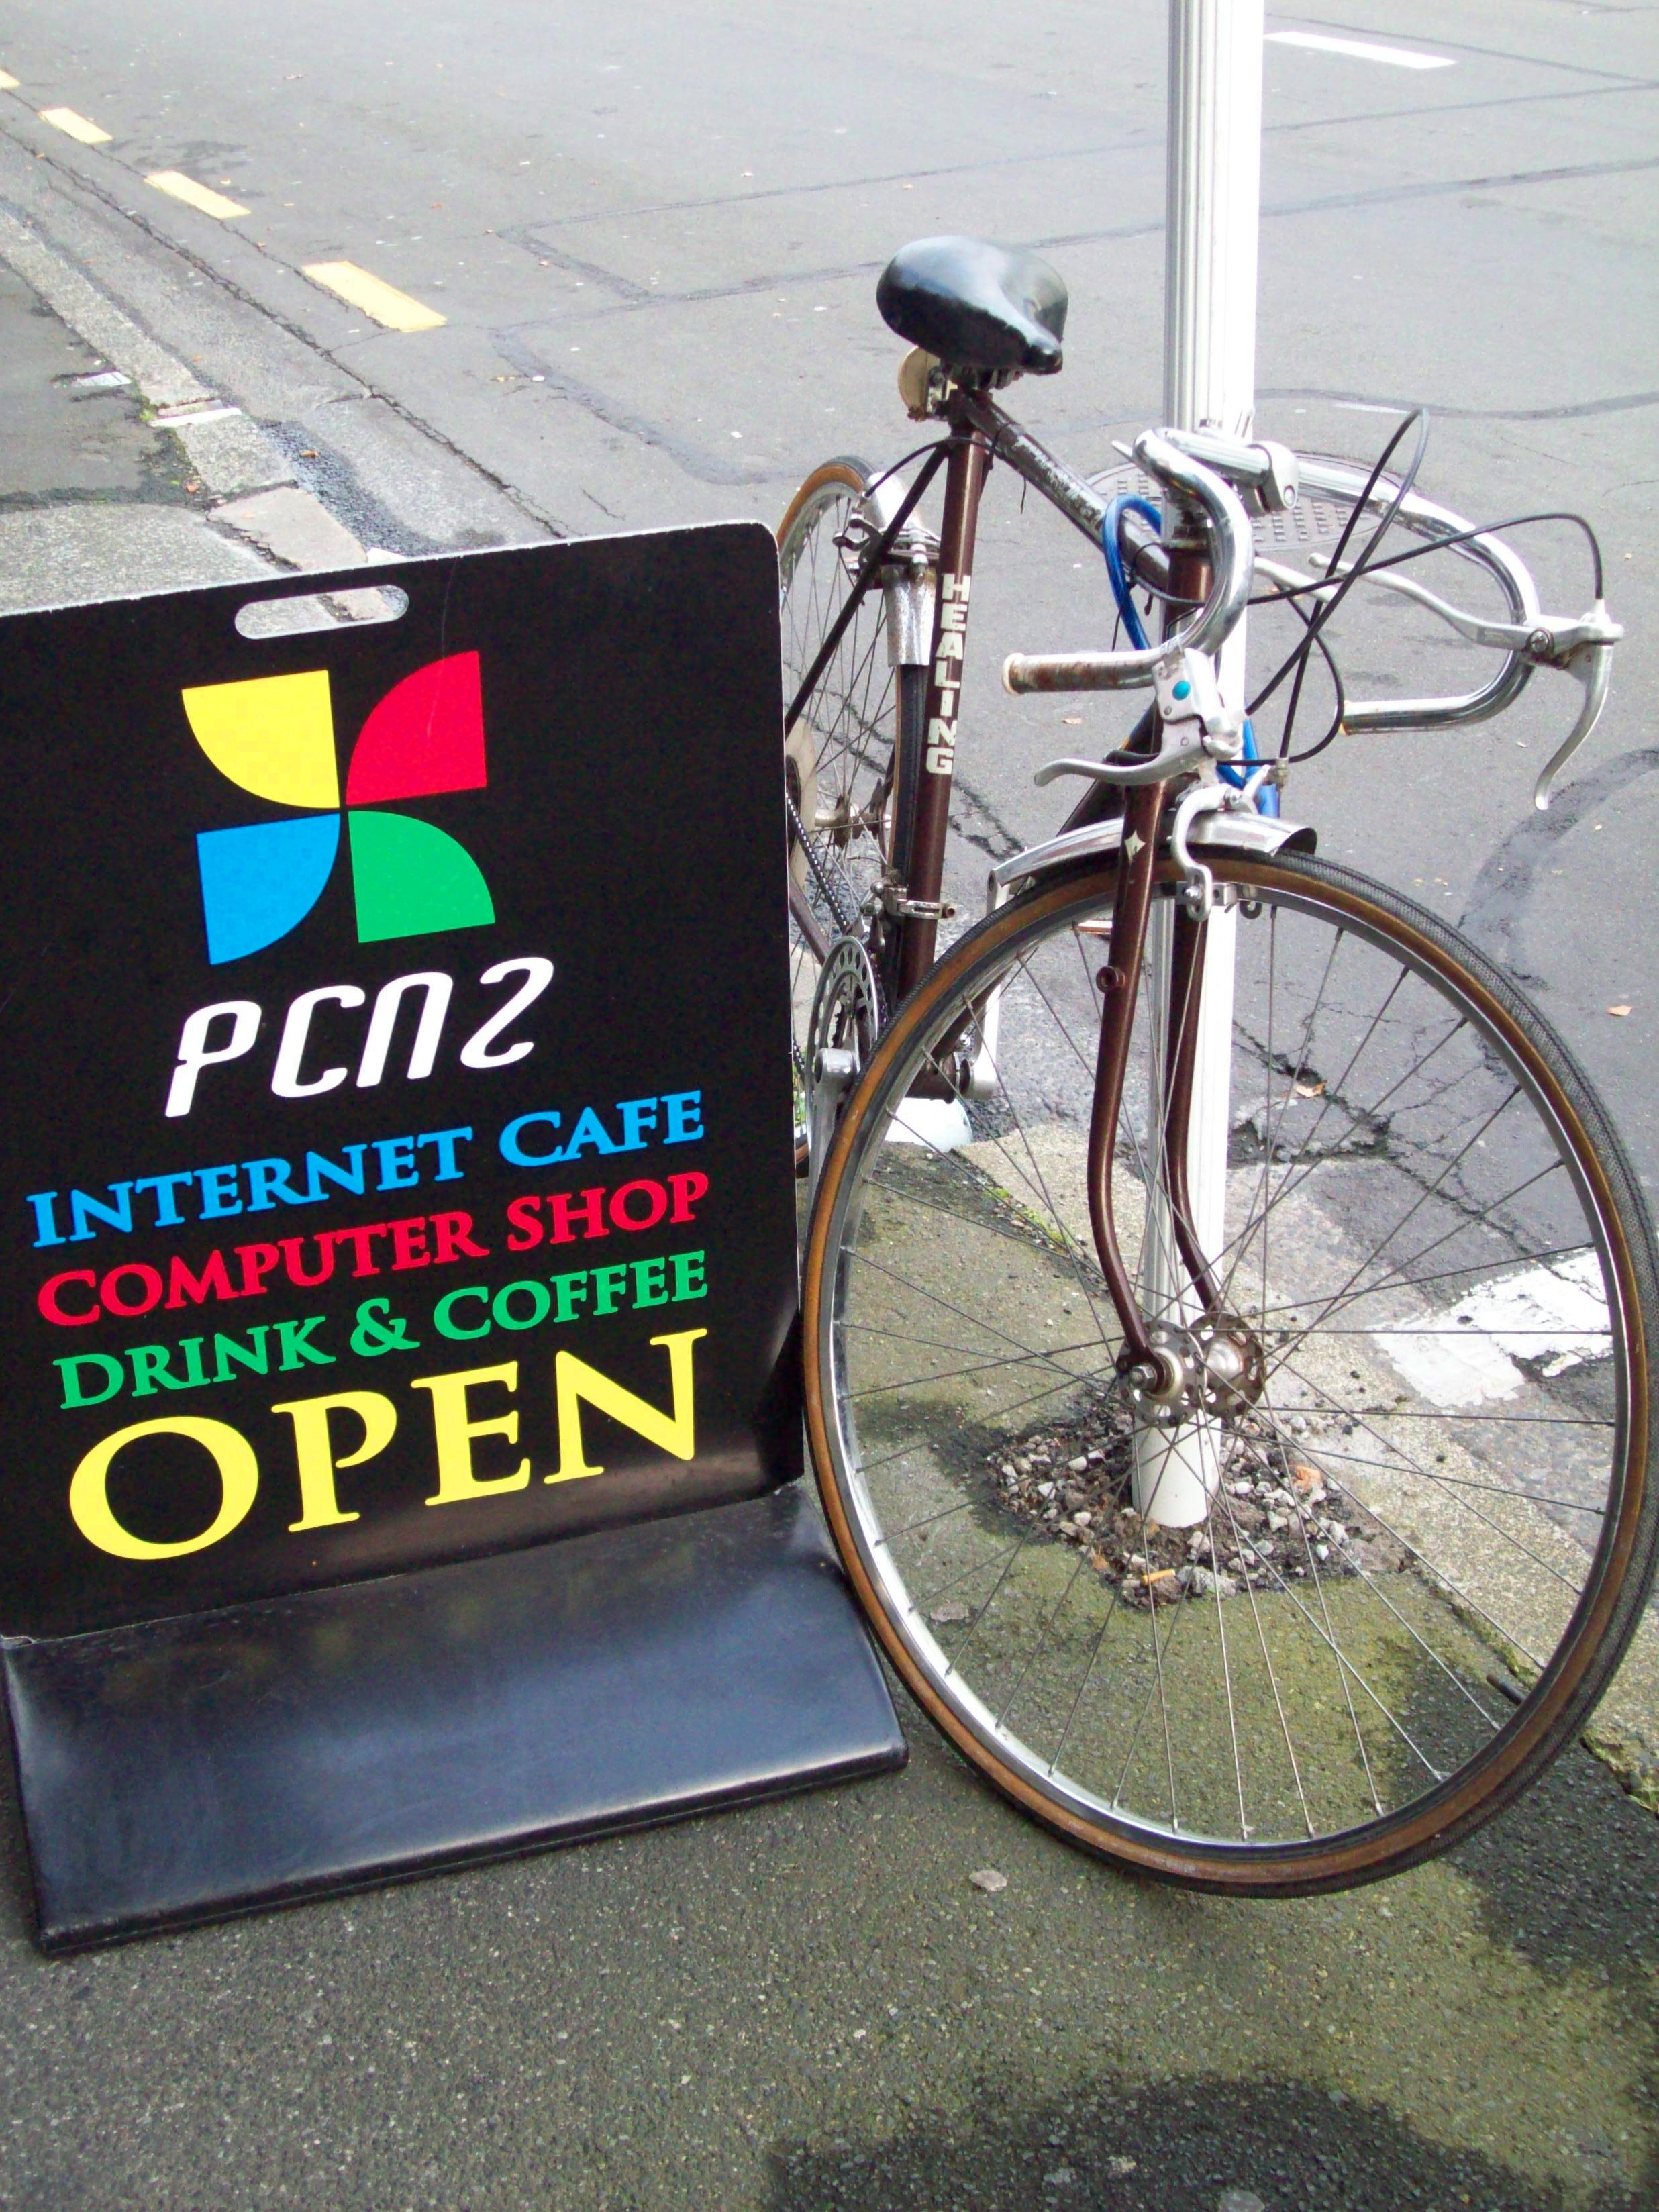 PCNZ Internet Cafe Signage and Brown Hea, Attraction, Otago, Transport, Tourism, HQ Photo